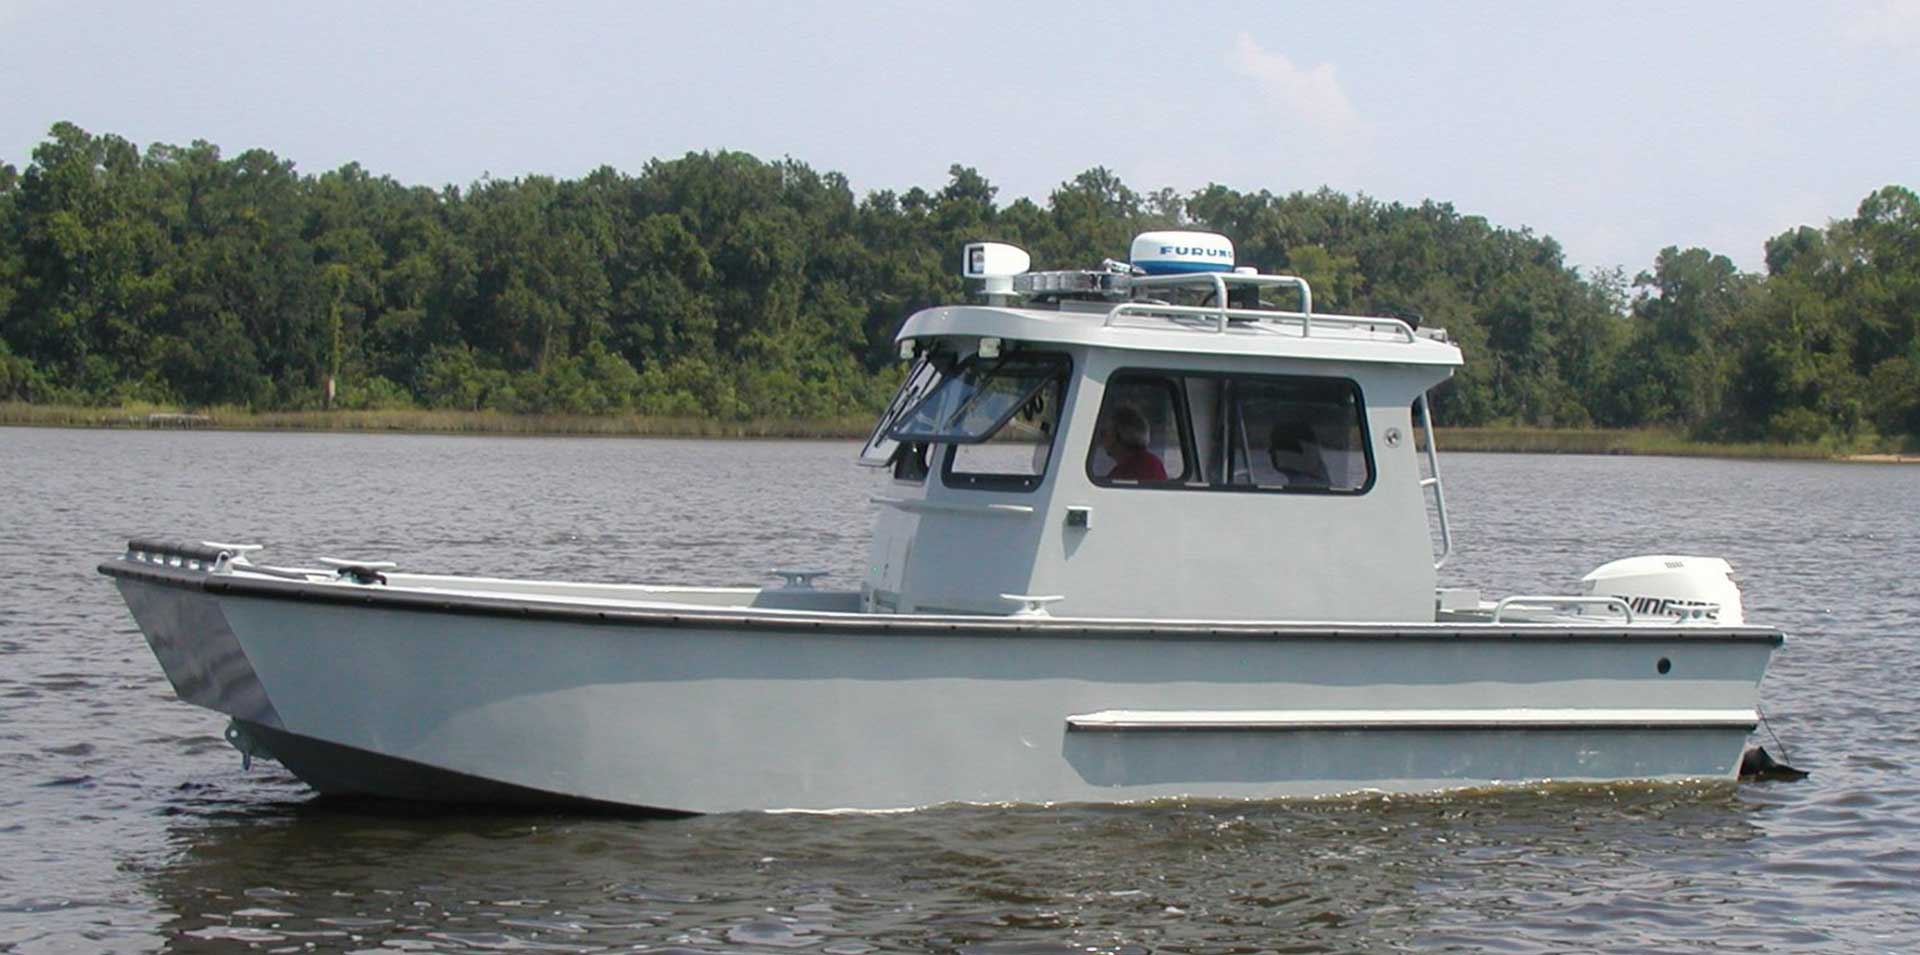 Silver Ships Explorer Series full pilothouse workboat